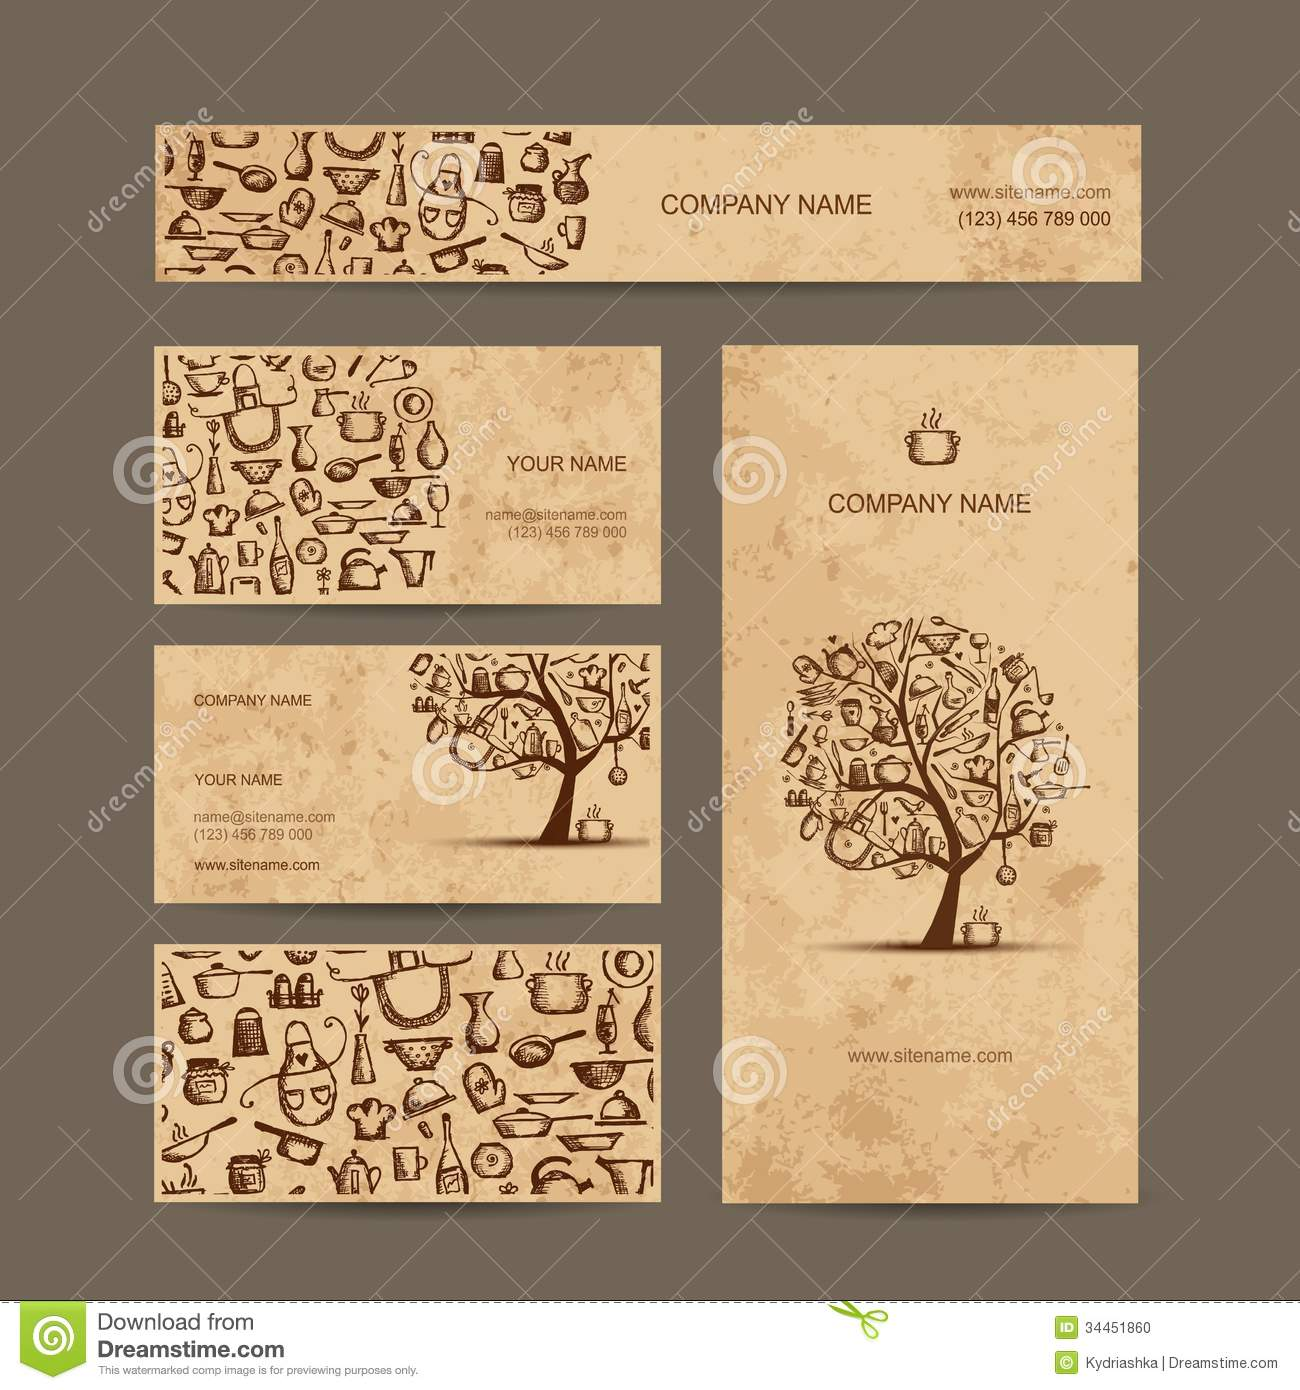 business cards design, coffee house sketch stock photo - image